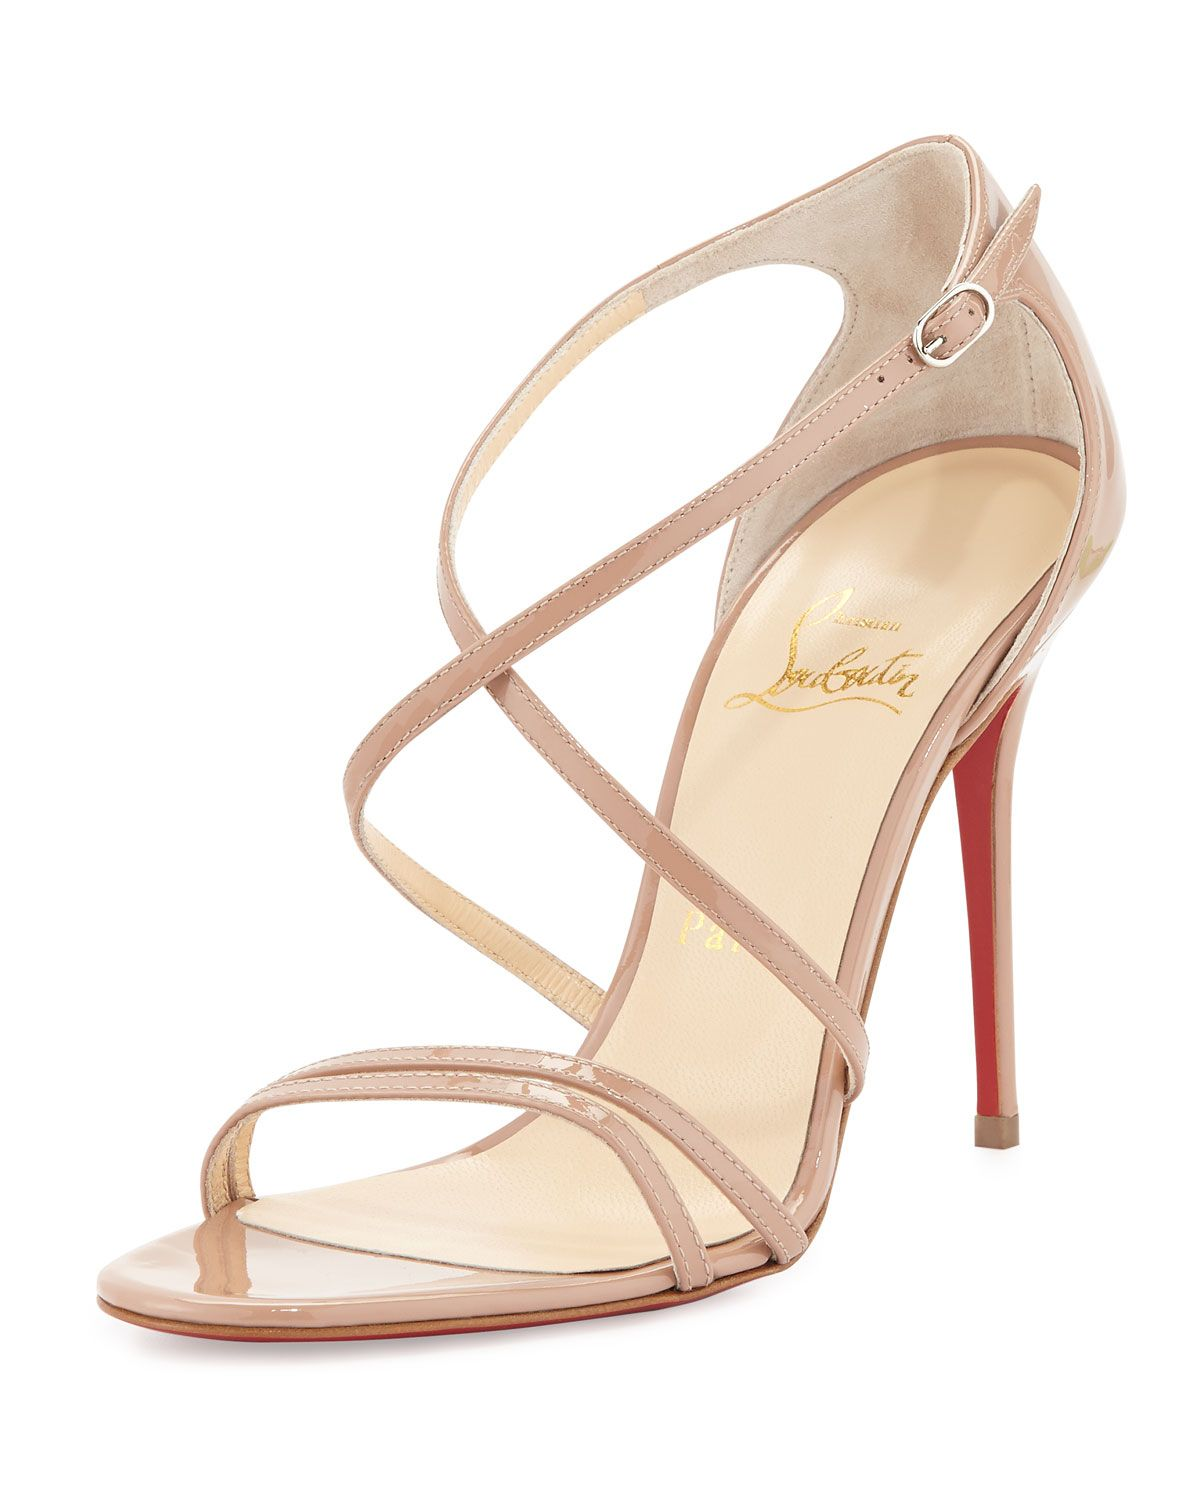 30420a2b26b Pin by Iris Ntanakos on shoes Christian Louboutin in 2019 | Fashion ...